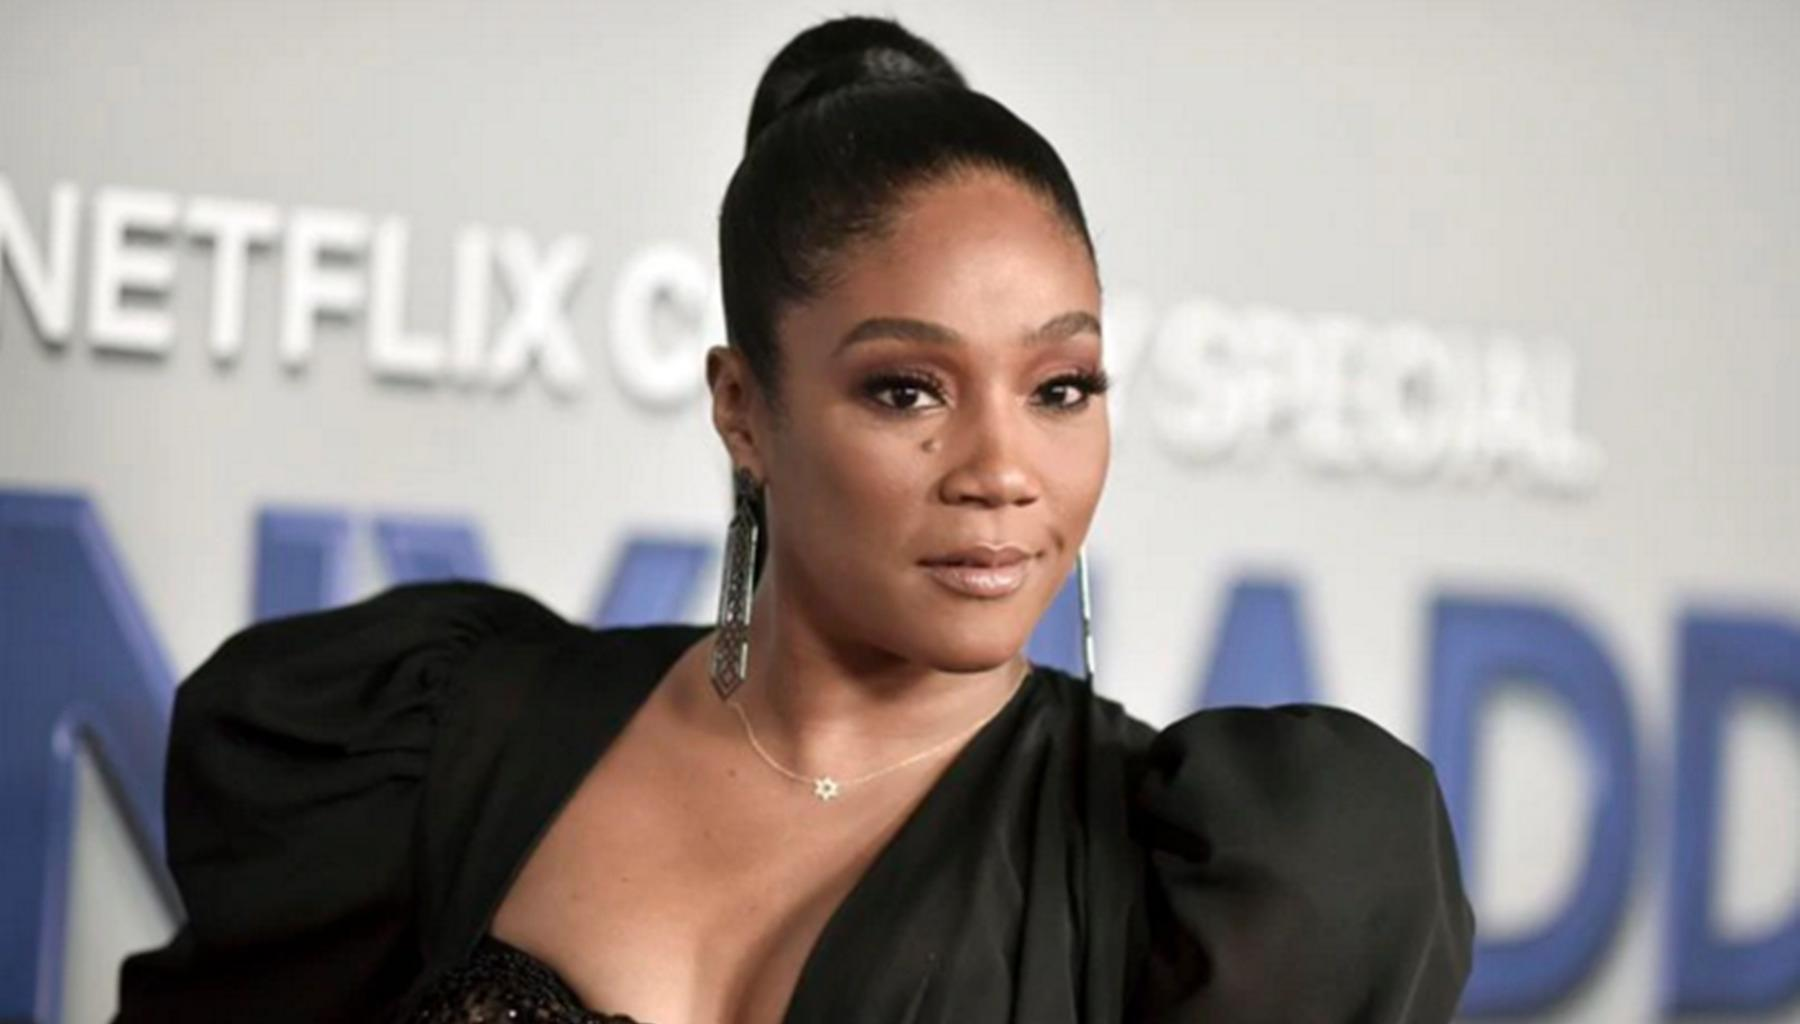 Karlie Redd Accuses Tiffany Haddish Of 'Doing Too Much' After Putting A Chris Rock Movie On Blast